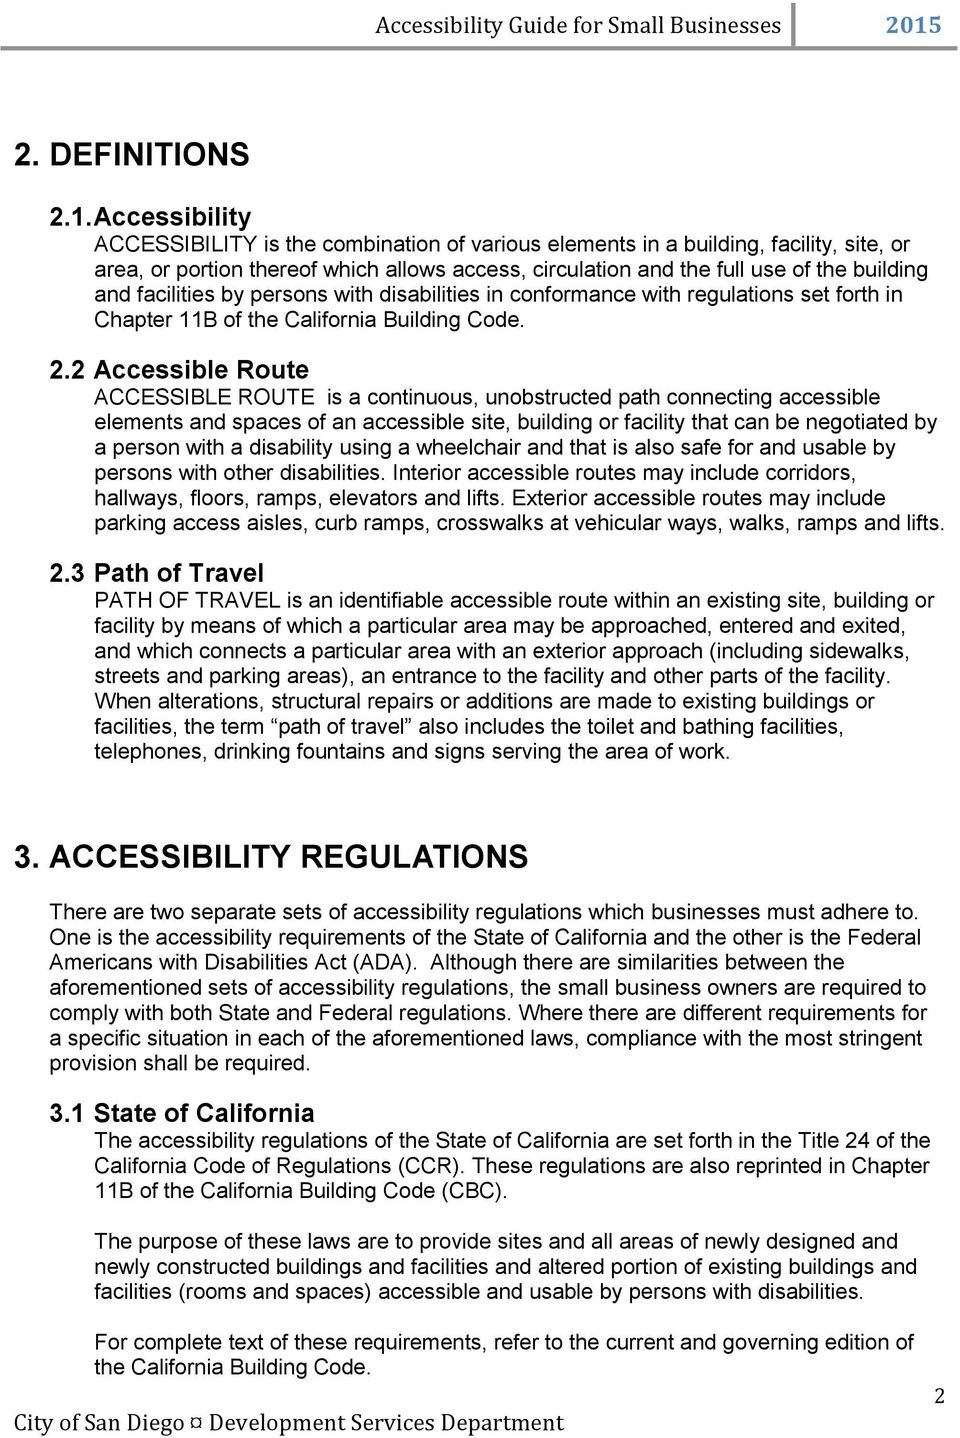 facilities by persons with disabilities in conformance with regulations set forth in Chapter 11B of the California Building Code. 2.